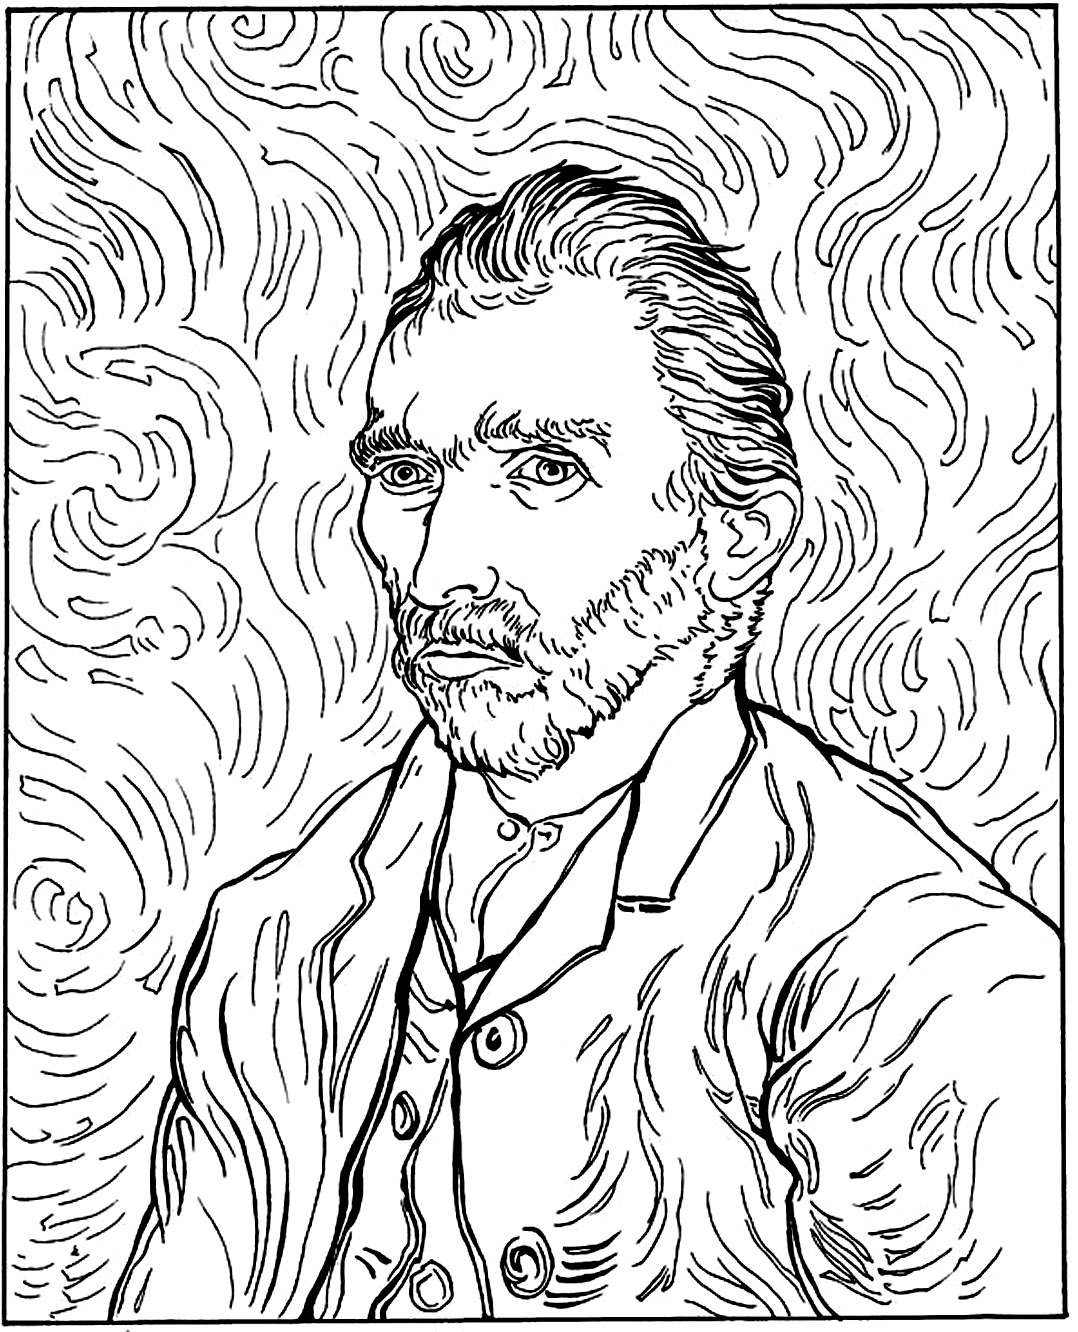 The Best Free Scott Coloring Page Images Download From 50 Free